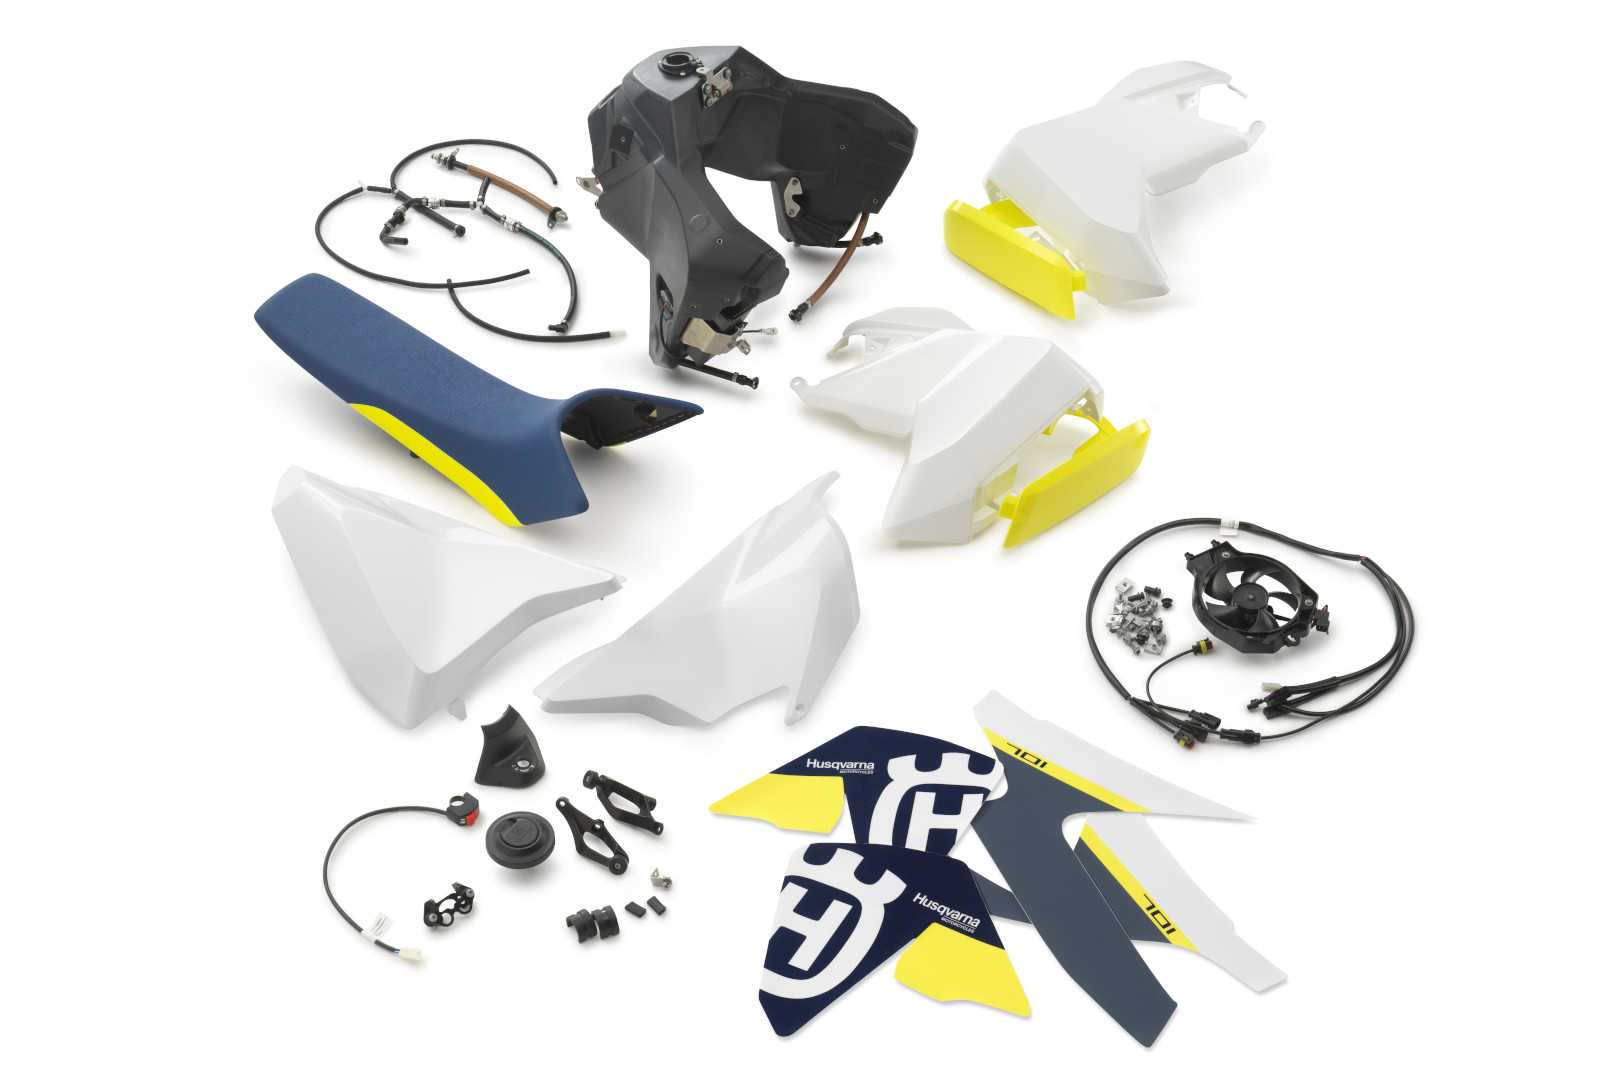 Bigger fuel tank kit for Husqvarna's 701 ENDURO